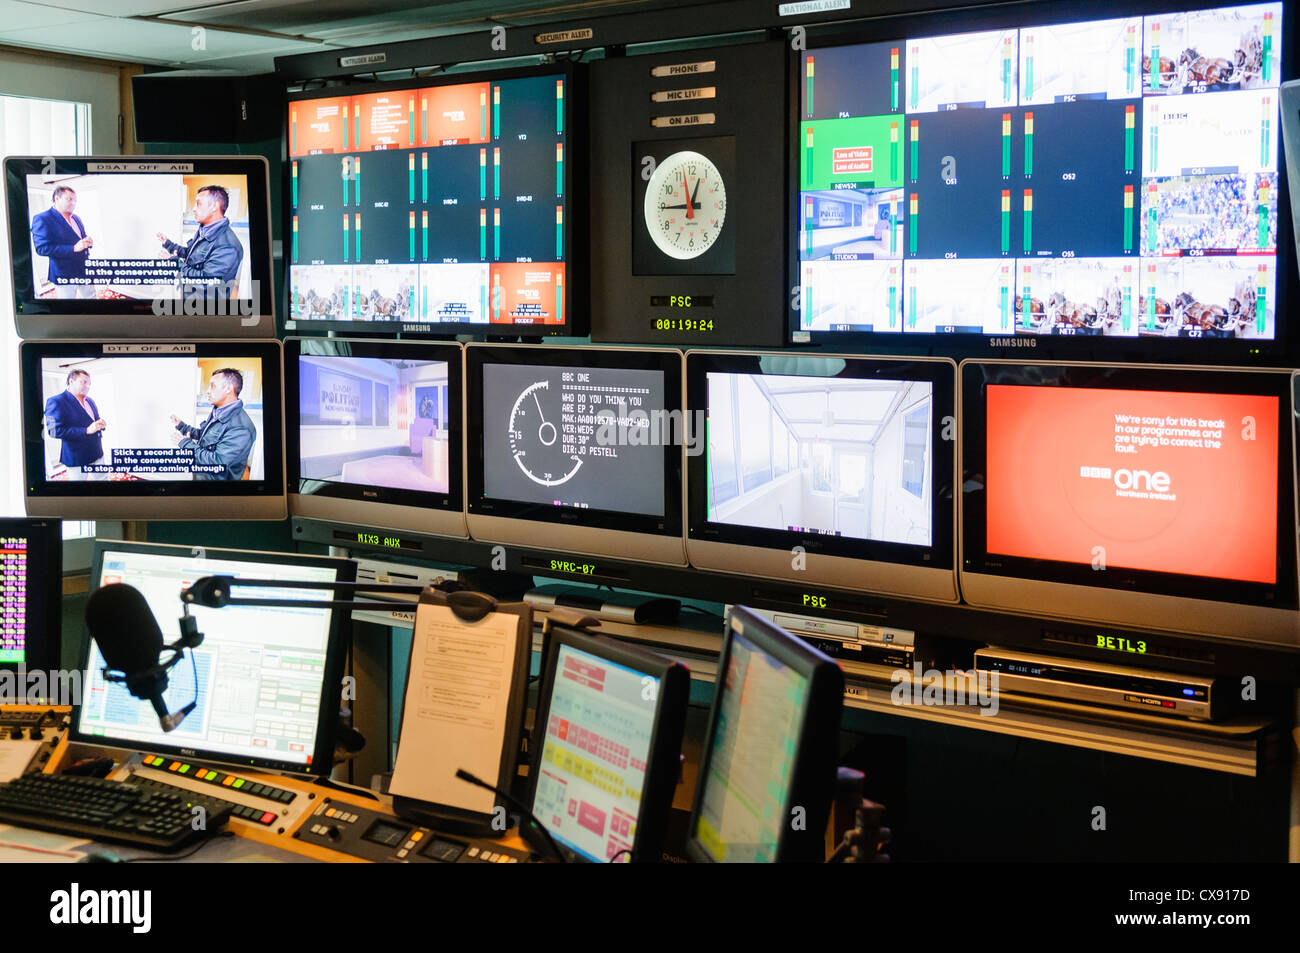 Regional broadcast schedule studio and control room for BBC1 Northern Ireland - Stock Image